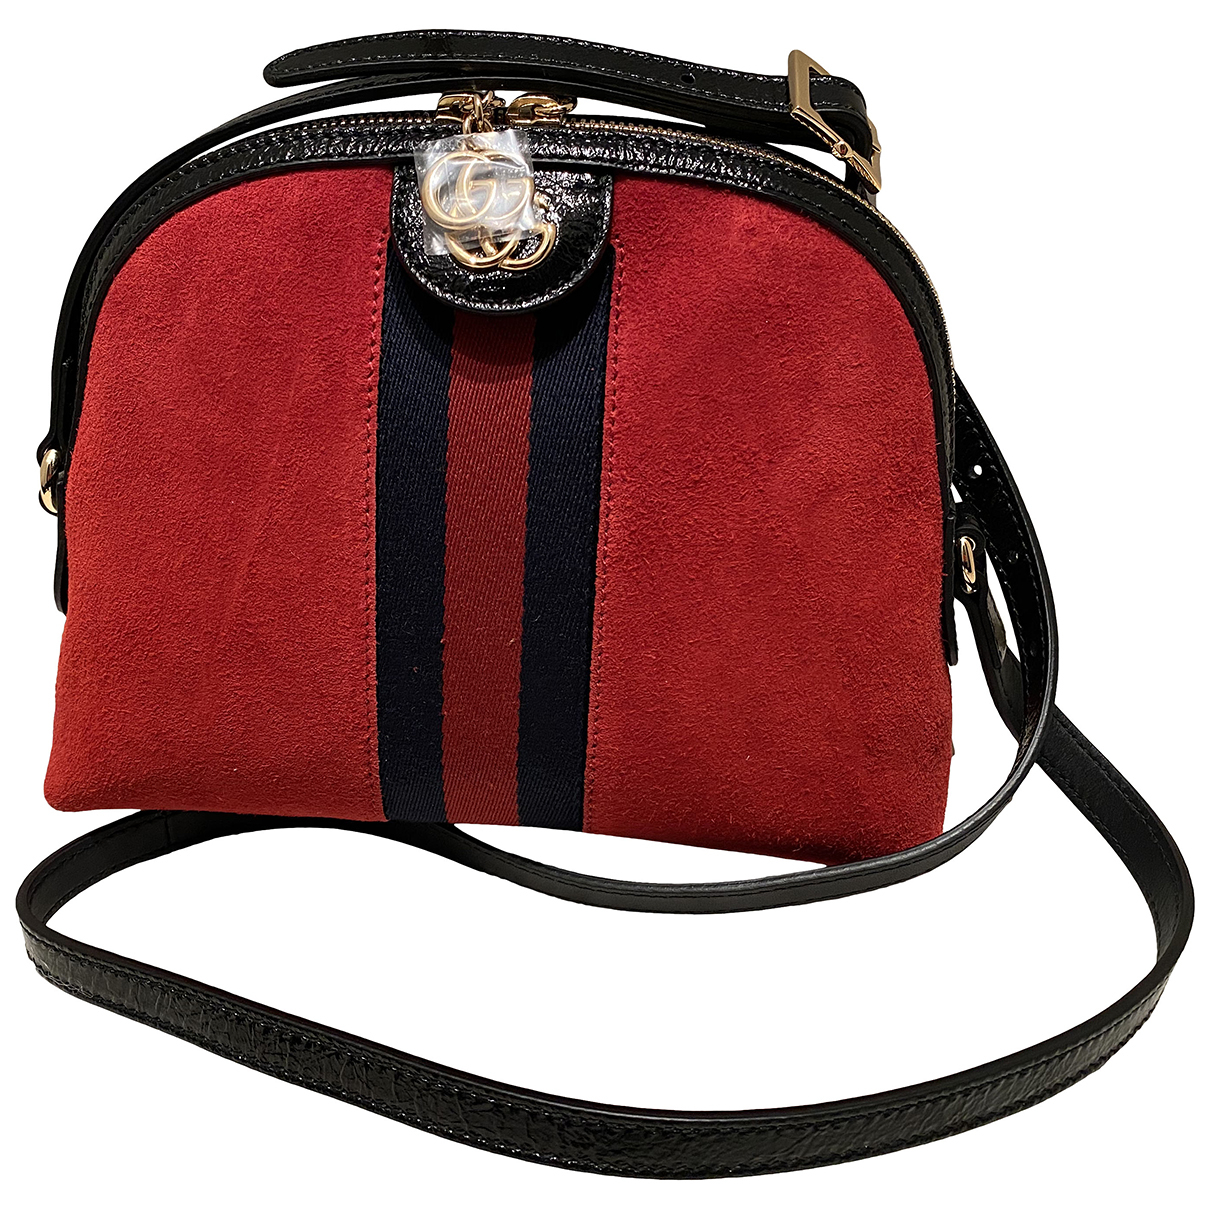 Gucci Ophidia Handtasche in  Rot Veloursleder